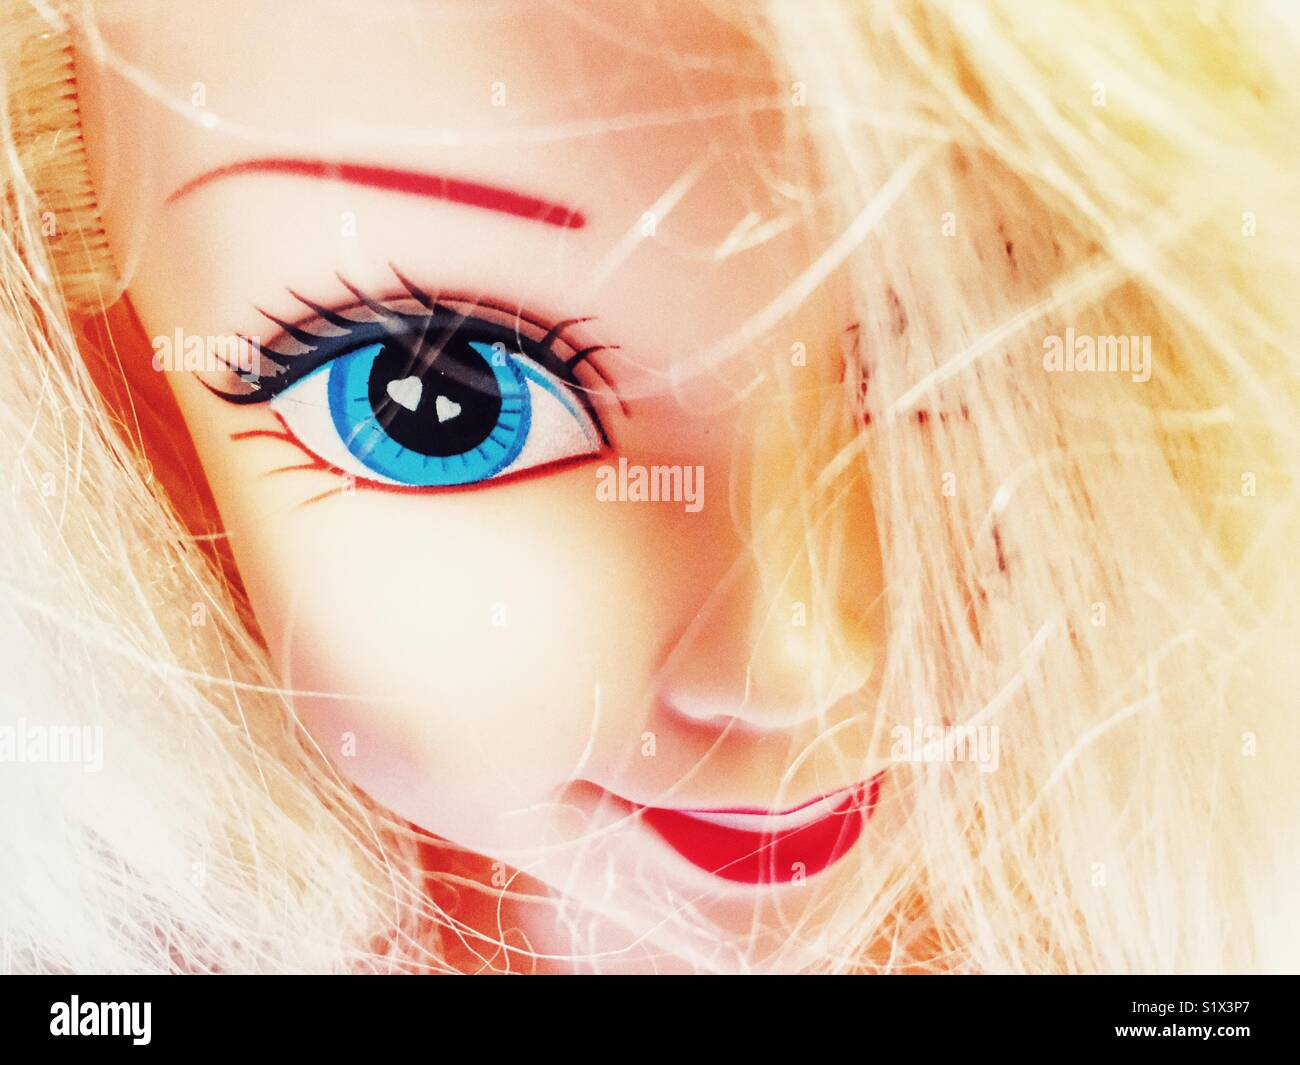 Blonde haired doll - Stock Image